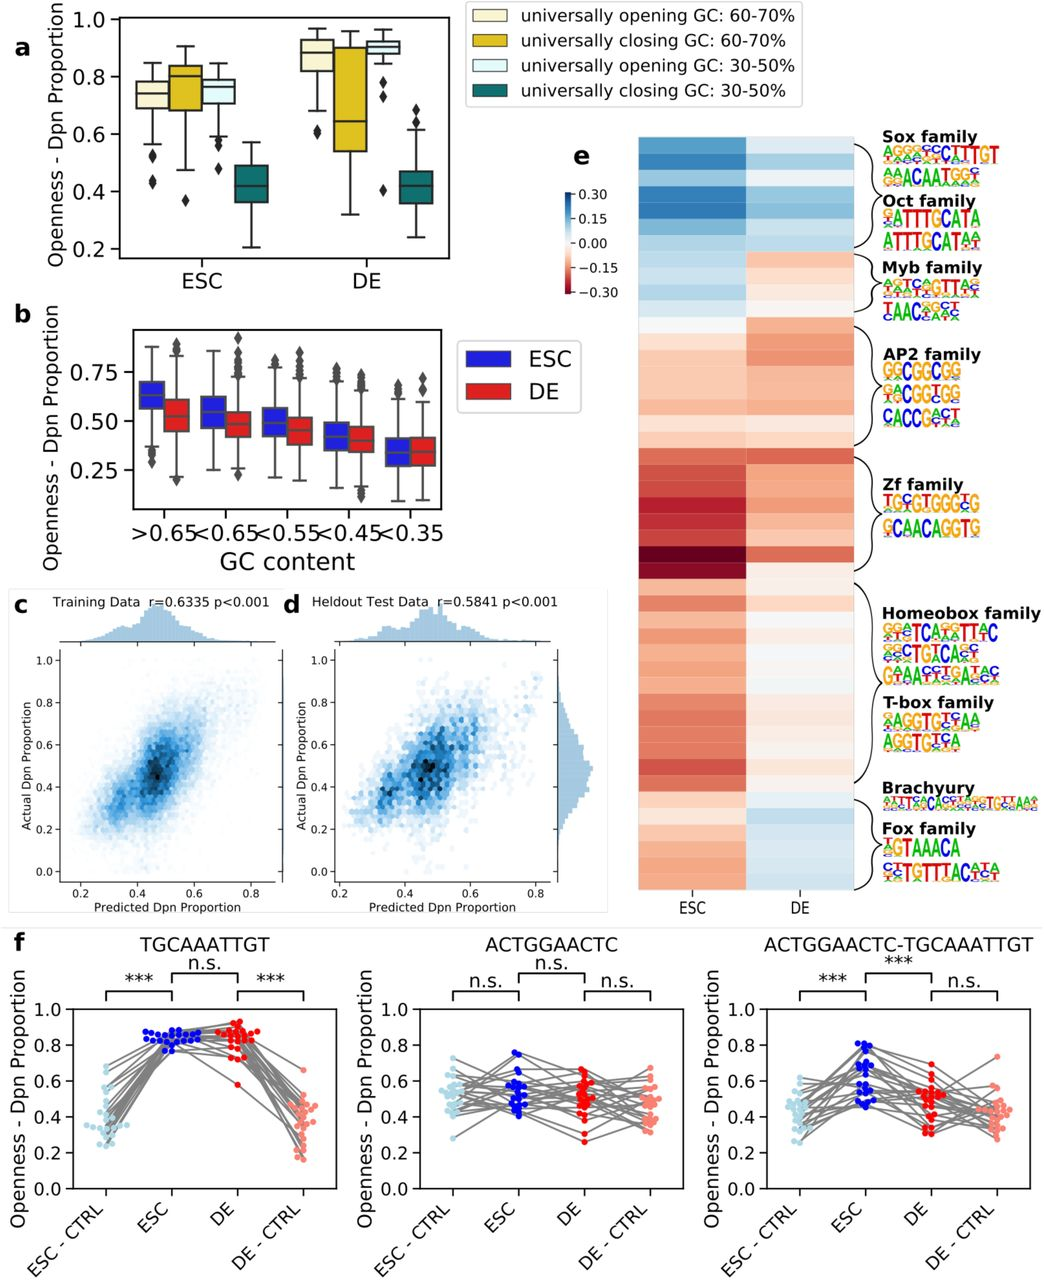 MIAA identifies global influence of GC-content and differentially accessible motifs. A) GC-content observed to be correlated with accessibility in both stem and endoderm cells from positive (universally opening) and negative (universally closing) control sequences. B) GC-content correlated with accessibility in random DNA phrases. The regression model was trained on MIAA Dpn proportions with GC-content, replicate, and cell type-specific effects of 20 motifs and 26 motif pairs as features, and predicts well on (C) training data (n = 21,420) and (D) held-out test data (n = 4,404). The correlation reported is the Pearson correlation coefficient (r). E) Regression weights of individual motifs and motif pairs in stem and definitive endoderm cells. Hierarchical clustering of regression weights followed by motif enrichment recovers clusters representing cell type-specific transcription factor DNA binding motifs. F) Example of individual motifs (left, middle) which alone do not differentially open chromatin, but differentially open chromatin stem cells in combination (right). Each dot represents the average DpnII read proportion of an individual phrase, compared to shuffled controls (CTRL). Significance computed by paired t-test.